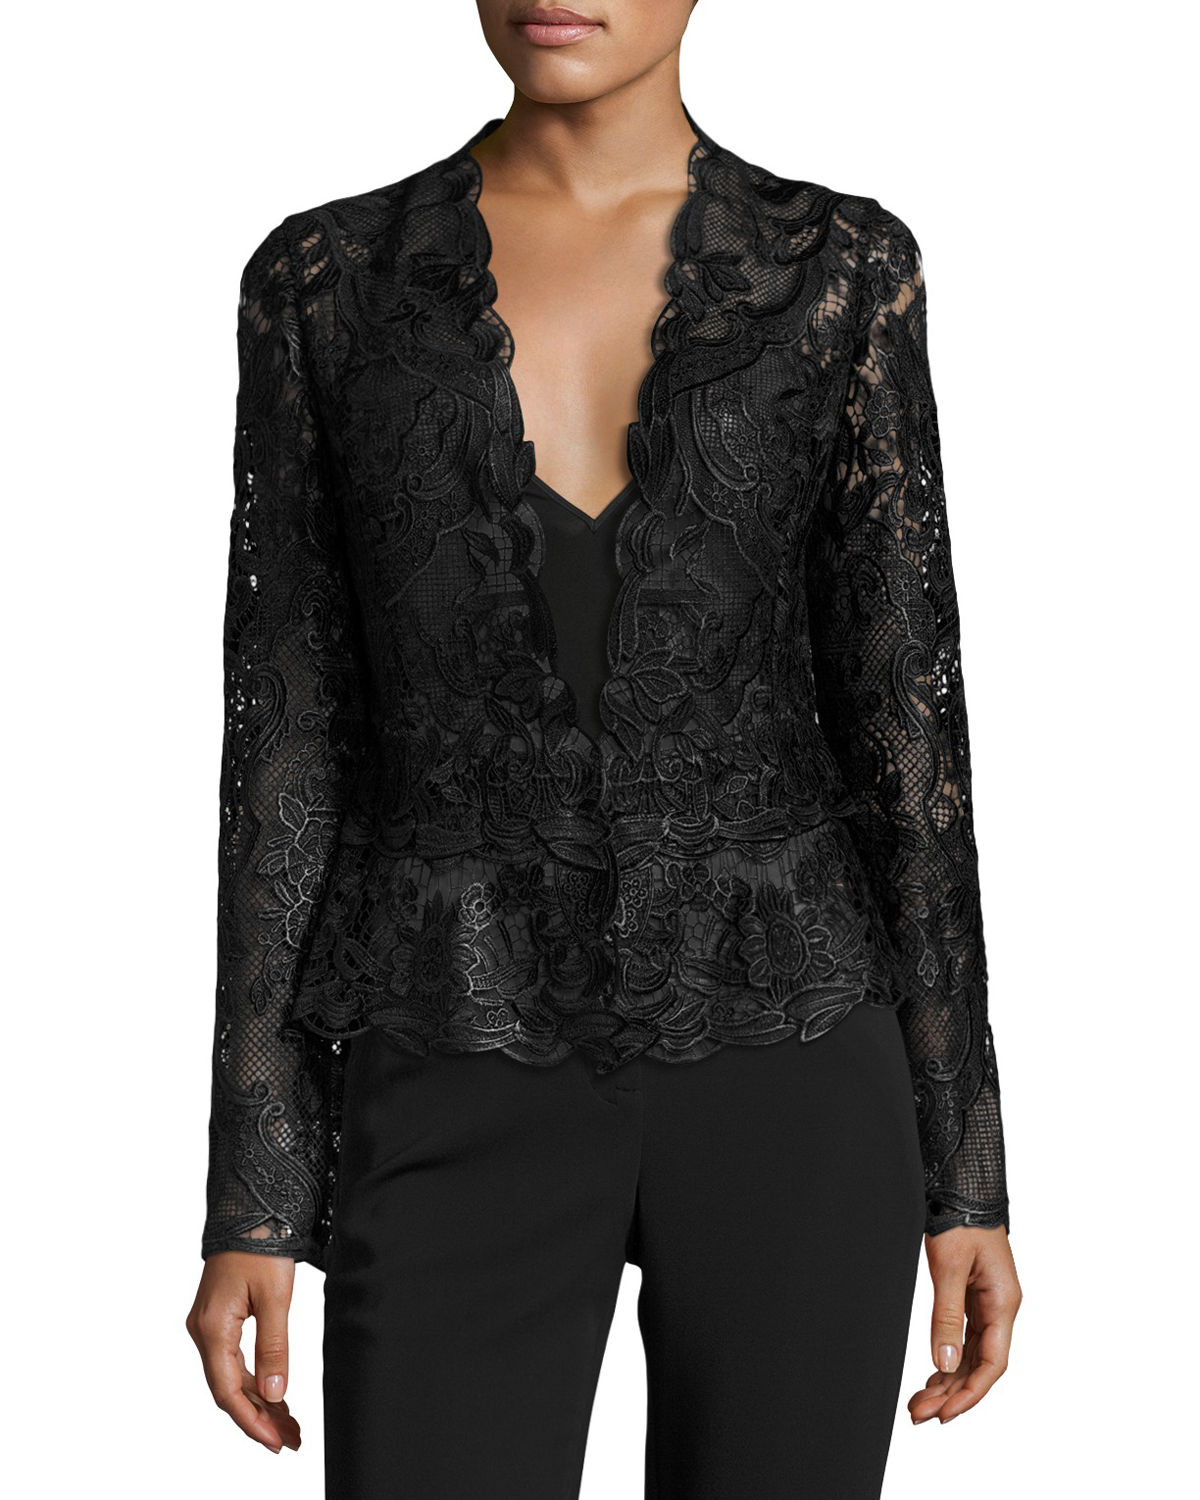 Miranda Tailored Lace Cocktail Jacket